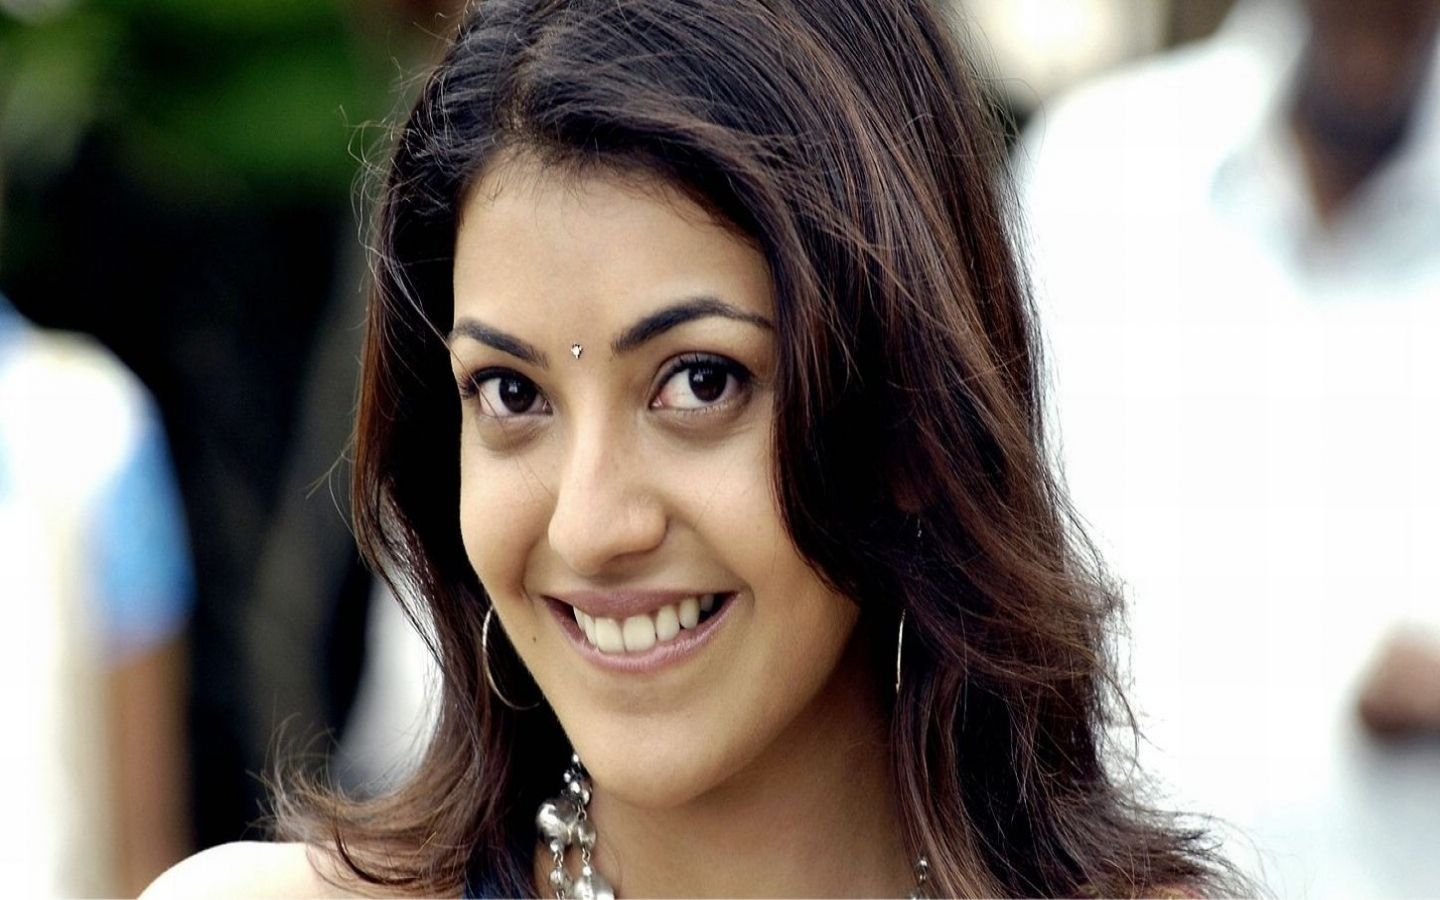 Wallpaper download kajal agarwal - Kajal Agarwal Wallpapers Free Download Amazing Pics 1280 825 Kajal Images Download Wallpapers 41